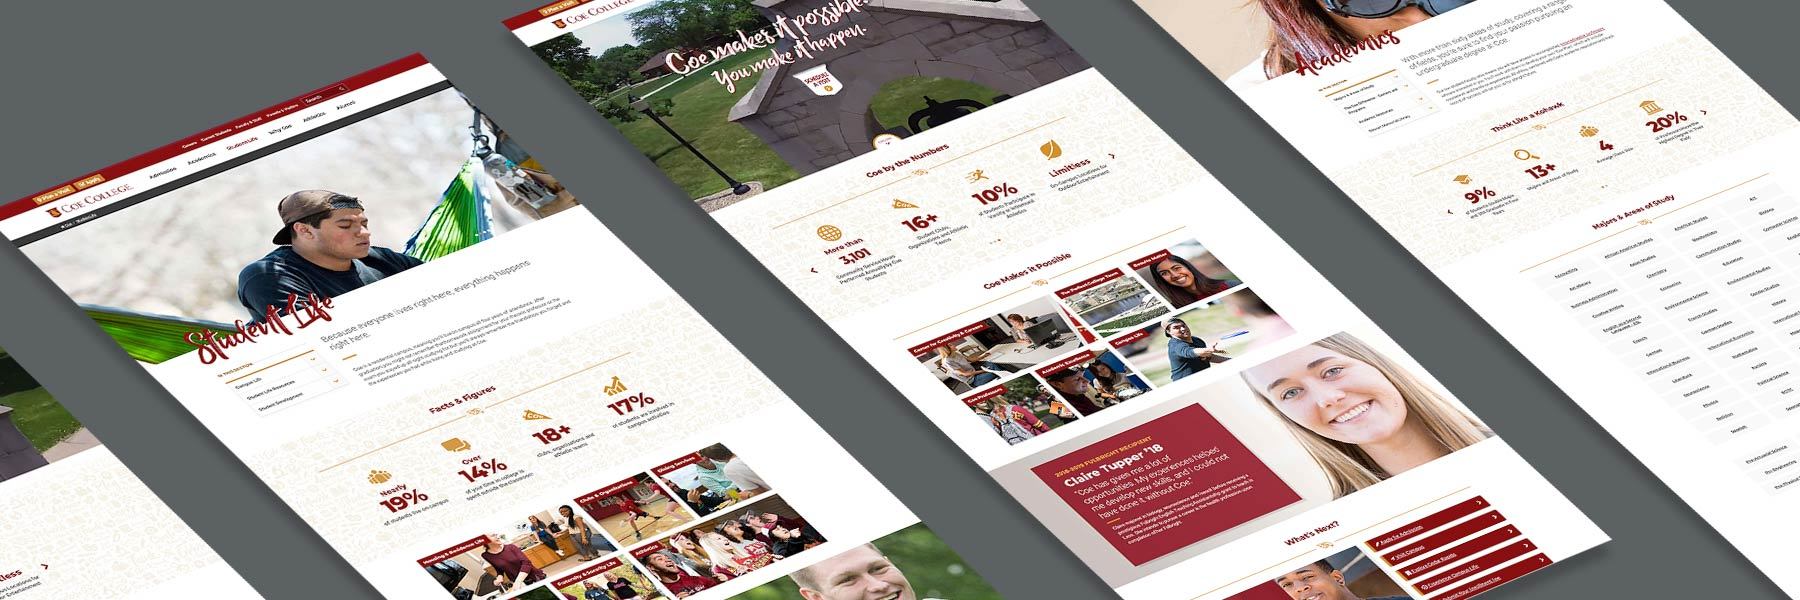 Coe College Website Pages